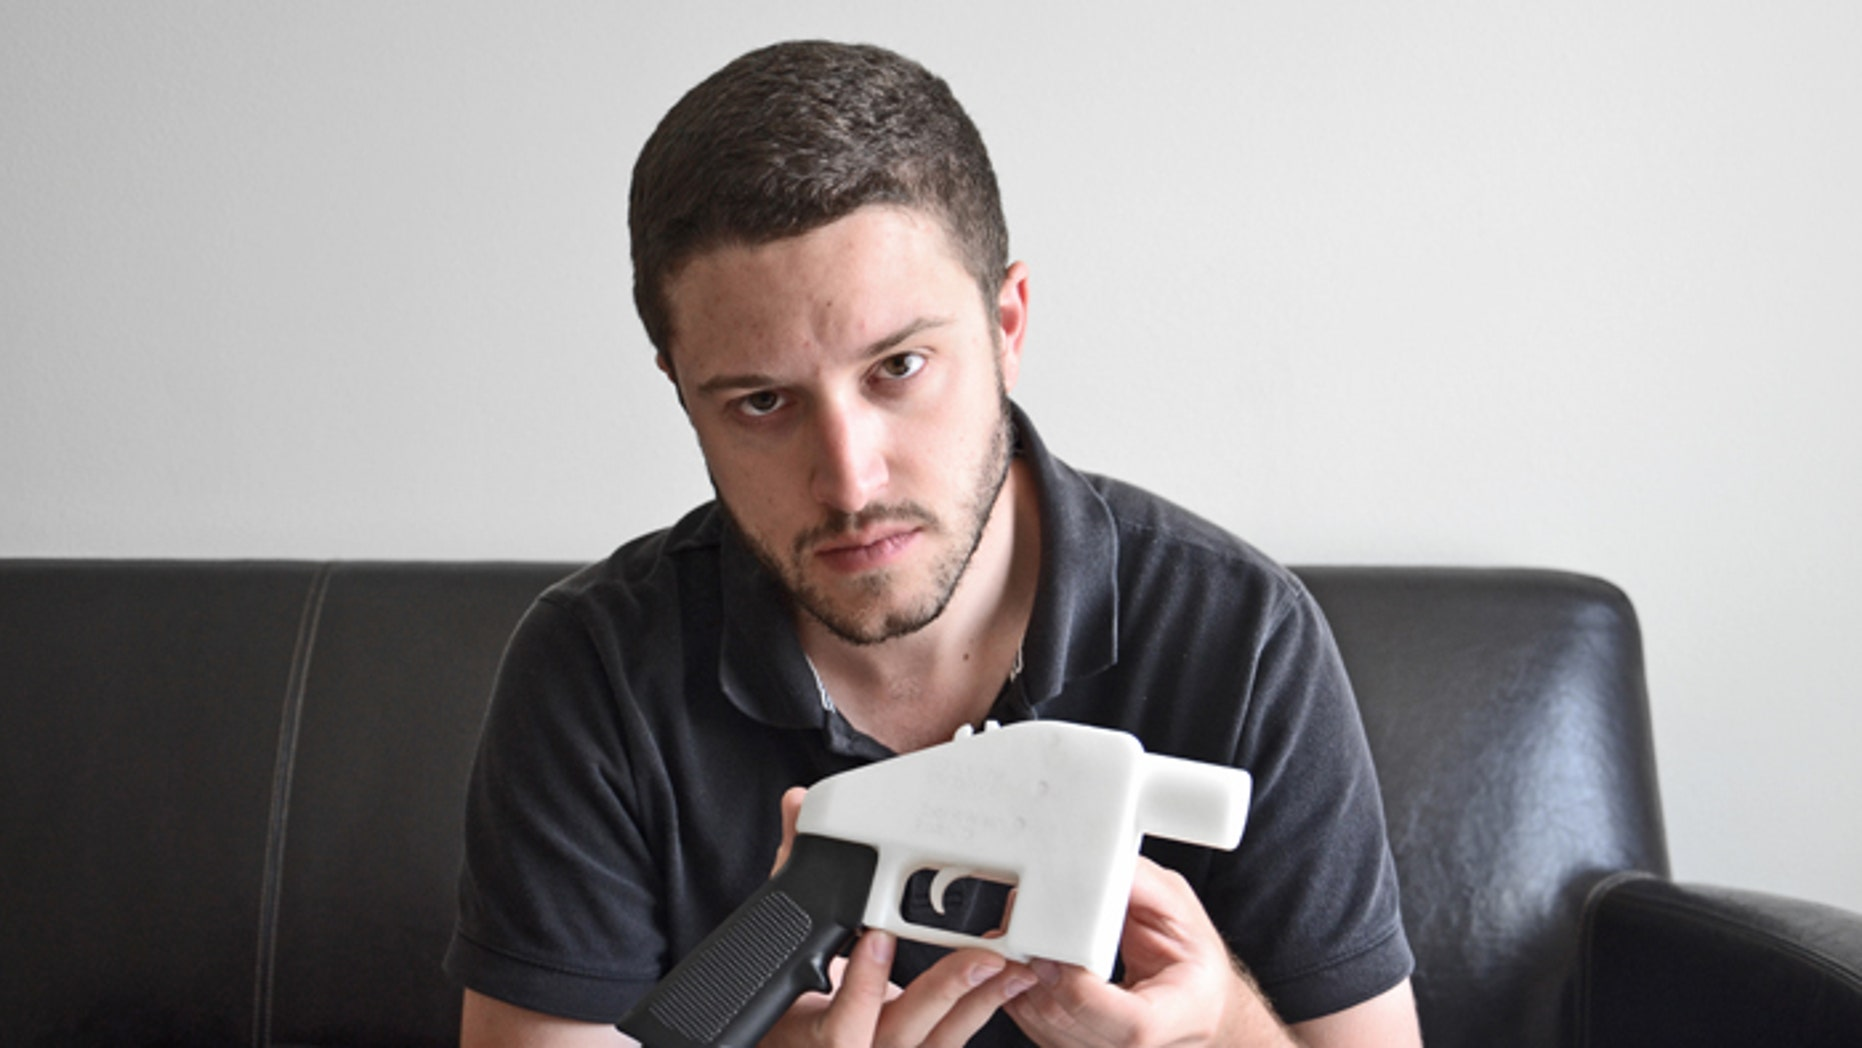 Cody Wilson claims the federal government violated his rights under the First, Second and Fifth amendments when it prosecuted him for publishing plans for 3D printed guns. (Courtesy: Cody Wilson)